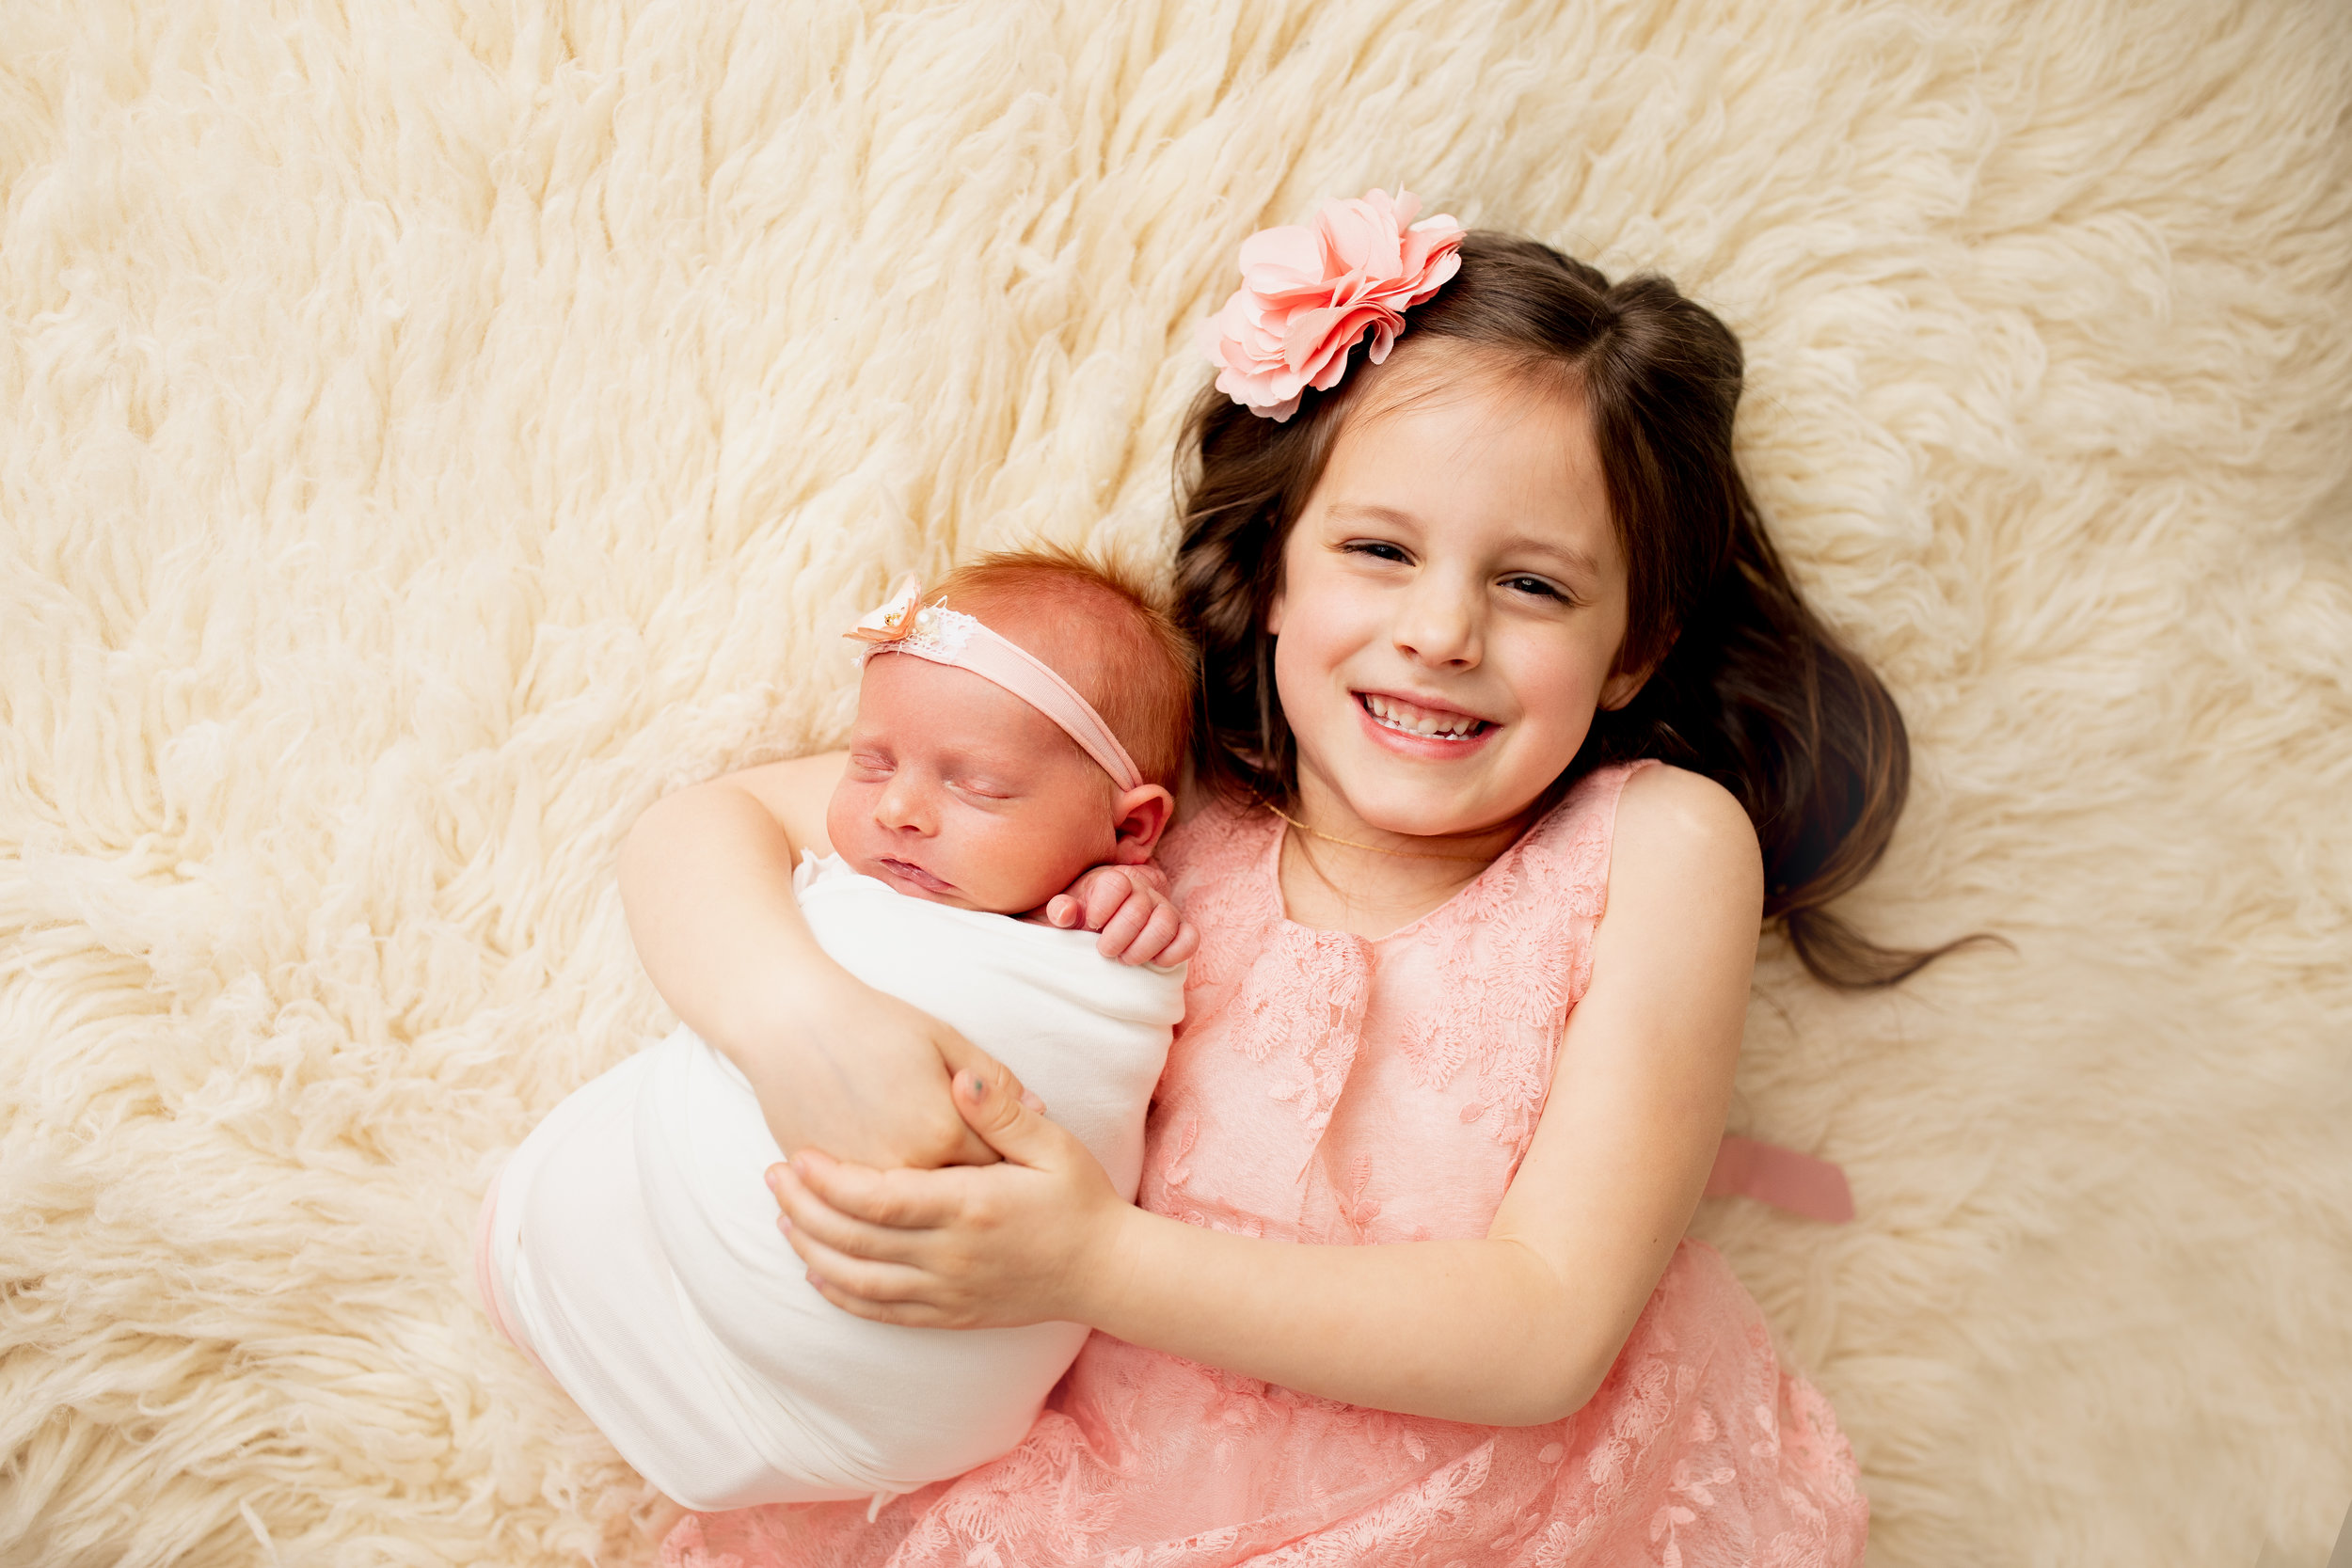 sister and newborn during family photography session